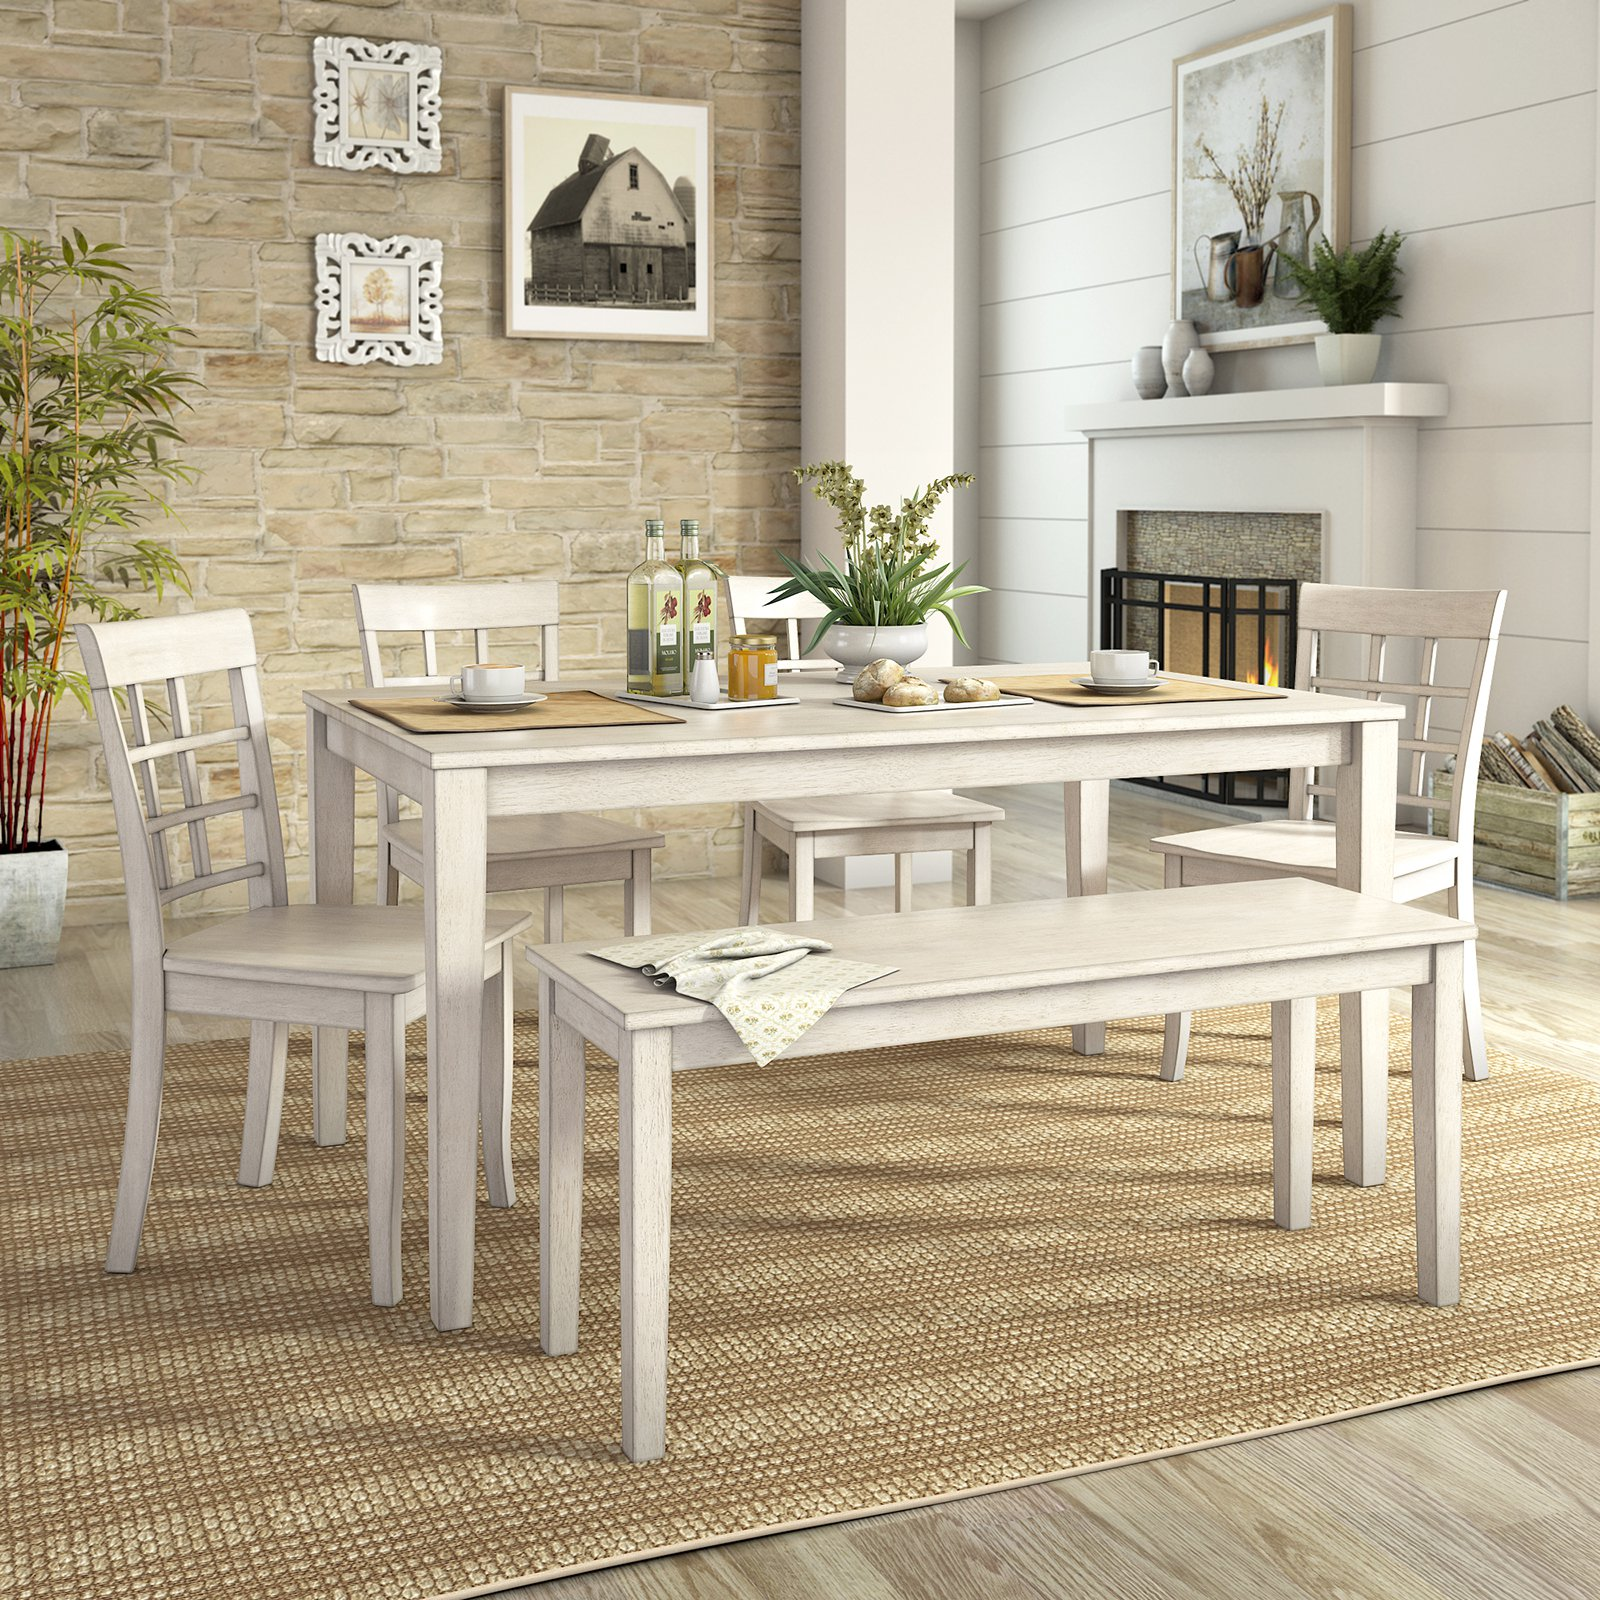 Lexington Large Dining Set with Bench and 4 Window Back Chairs